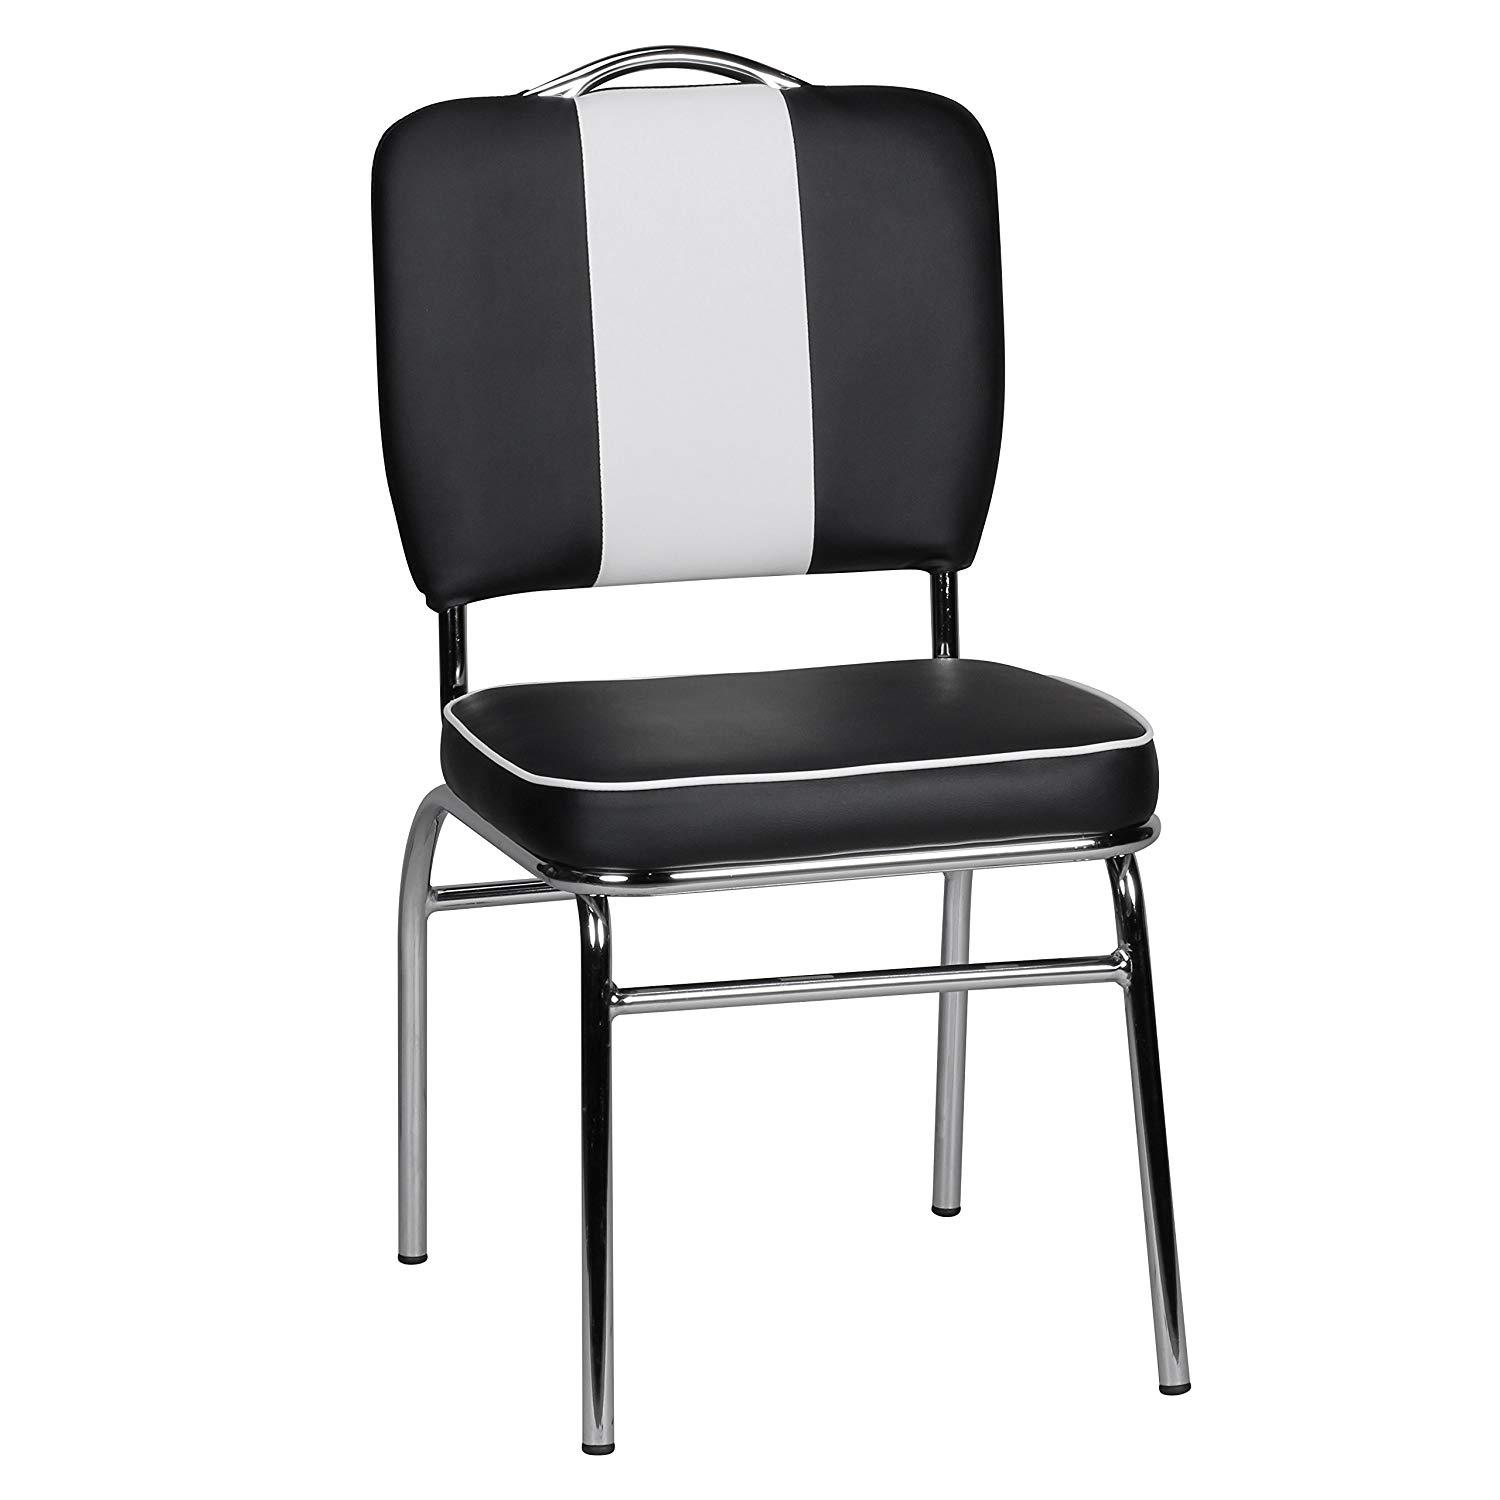 Silla de Confidente FIFTIES, Gran Acolchado, Estilo Retro, en Piel color Negro